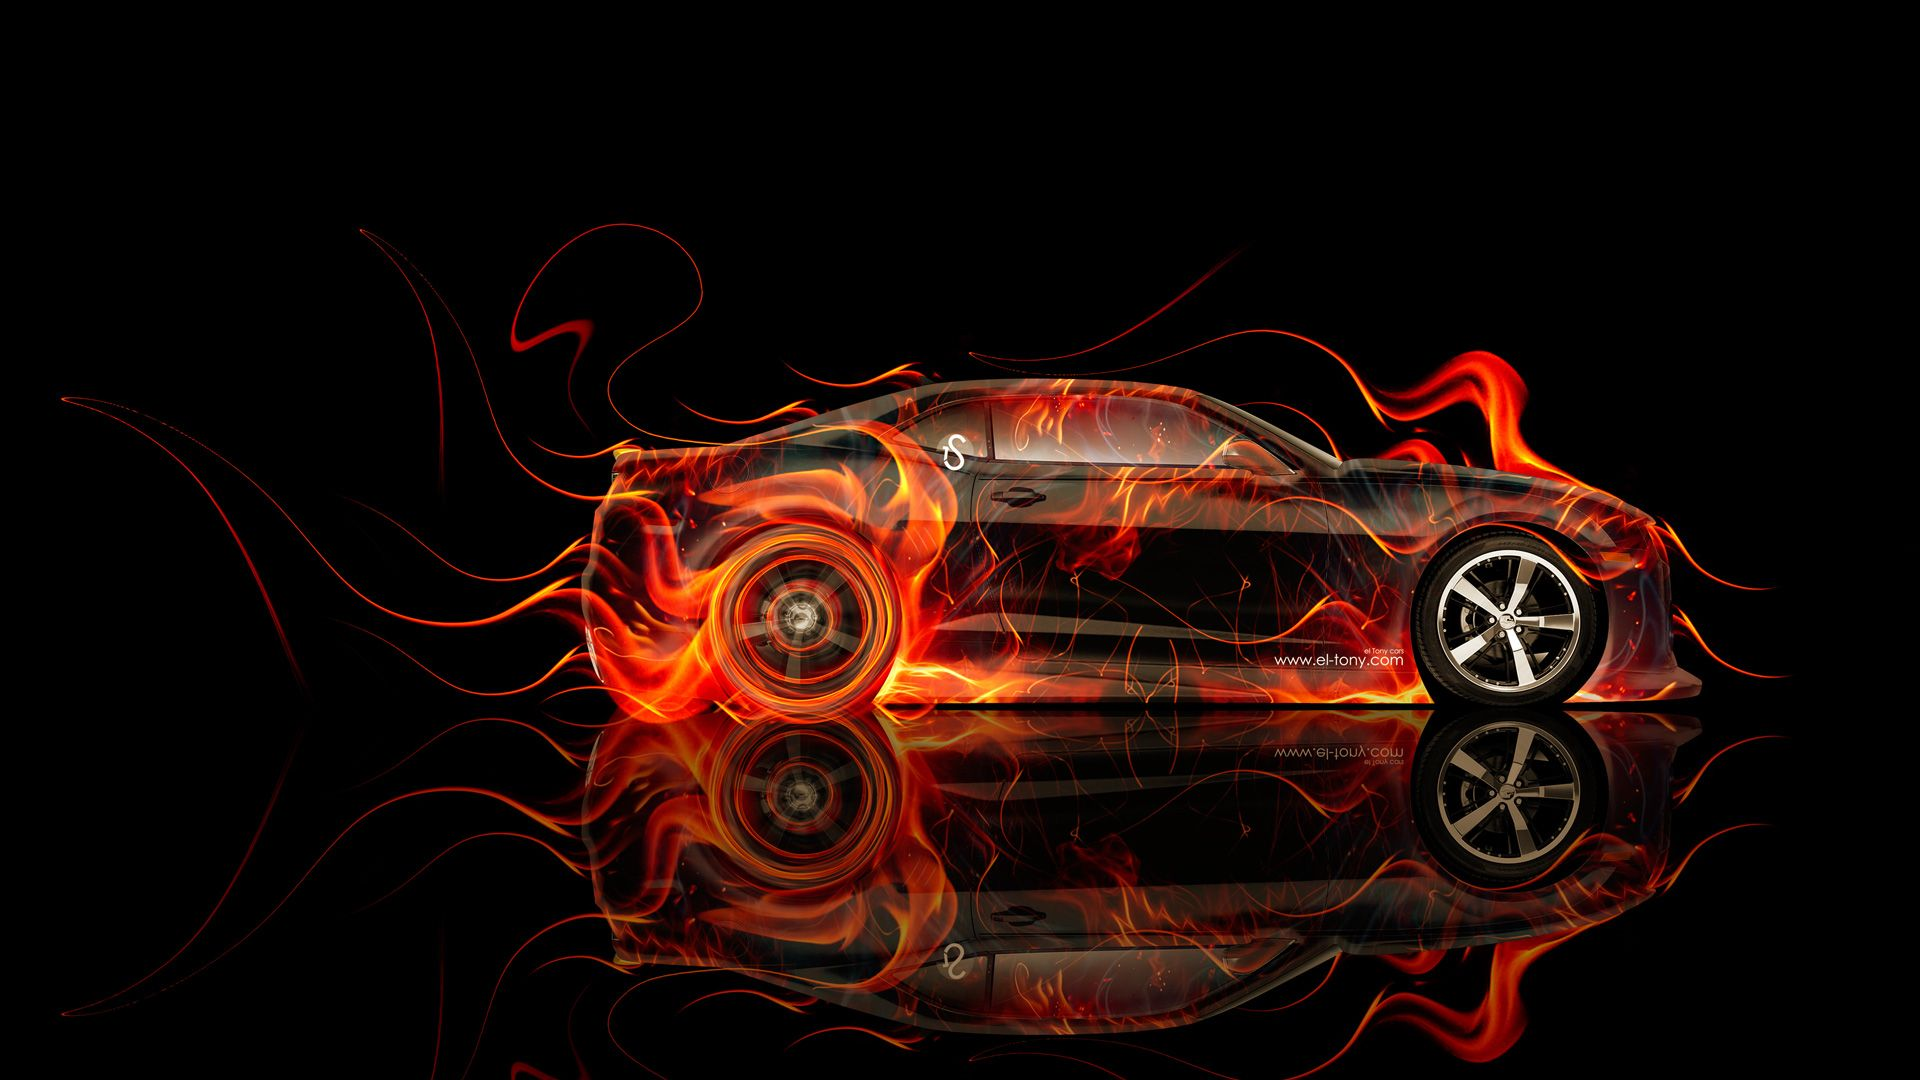 1920x1080 Chevrolet Camaro Muscle Side Fire Abstract Car 2014 | el Tony